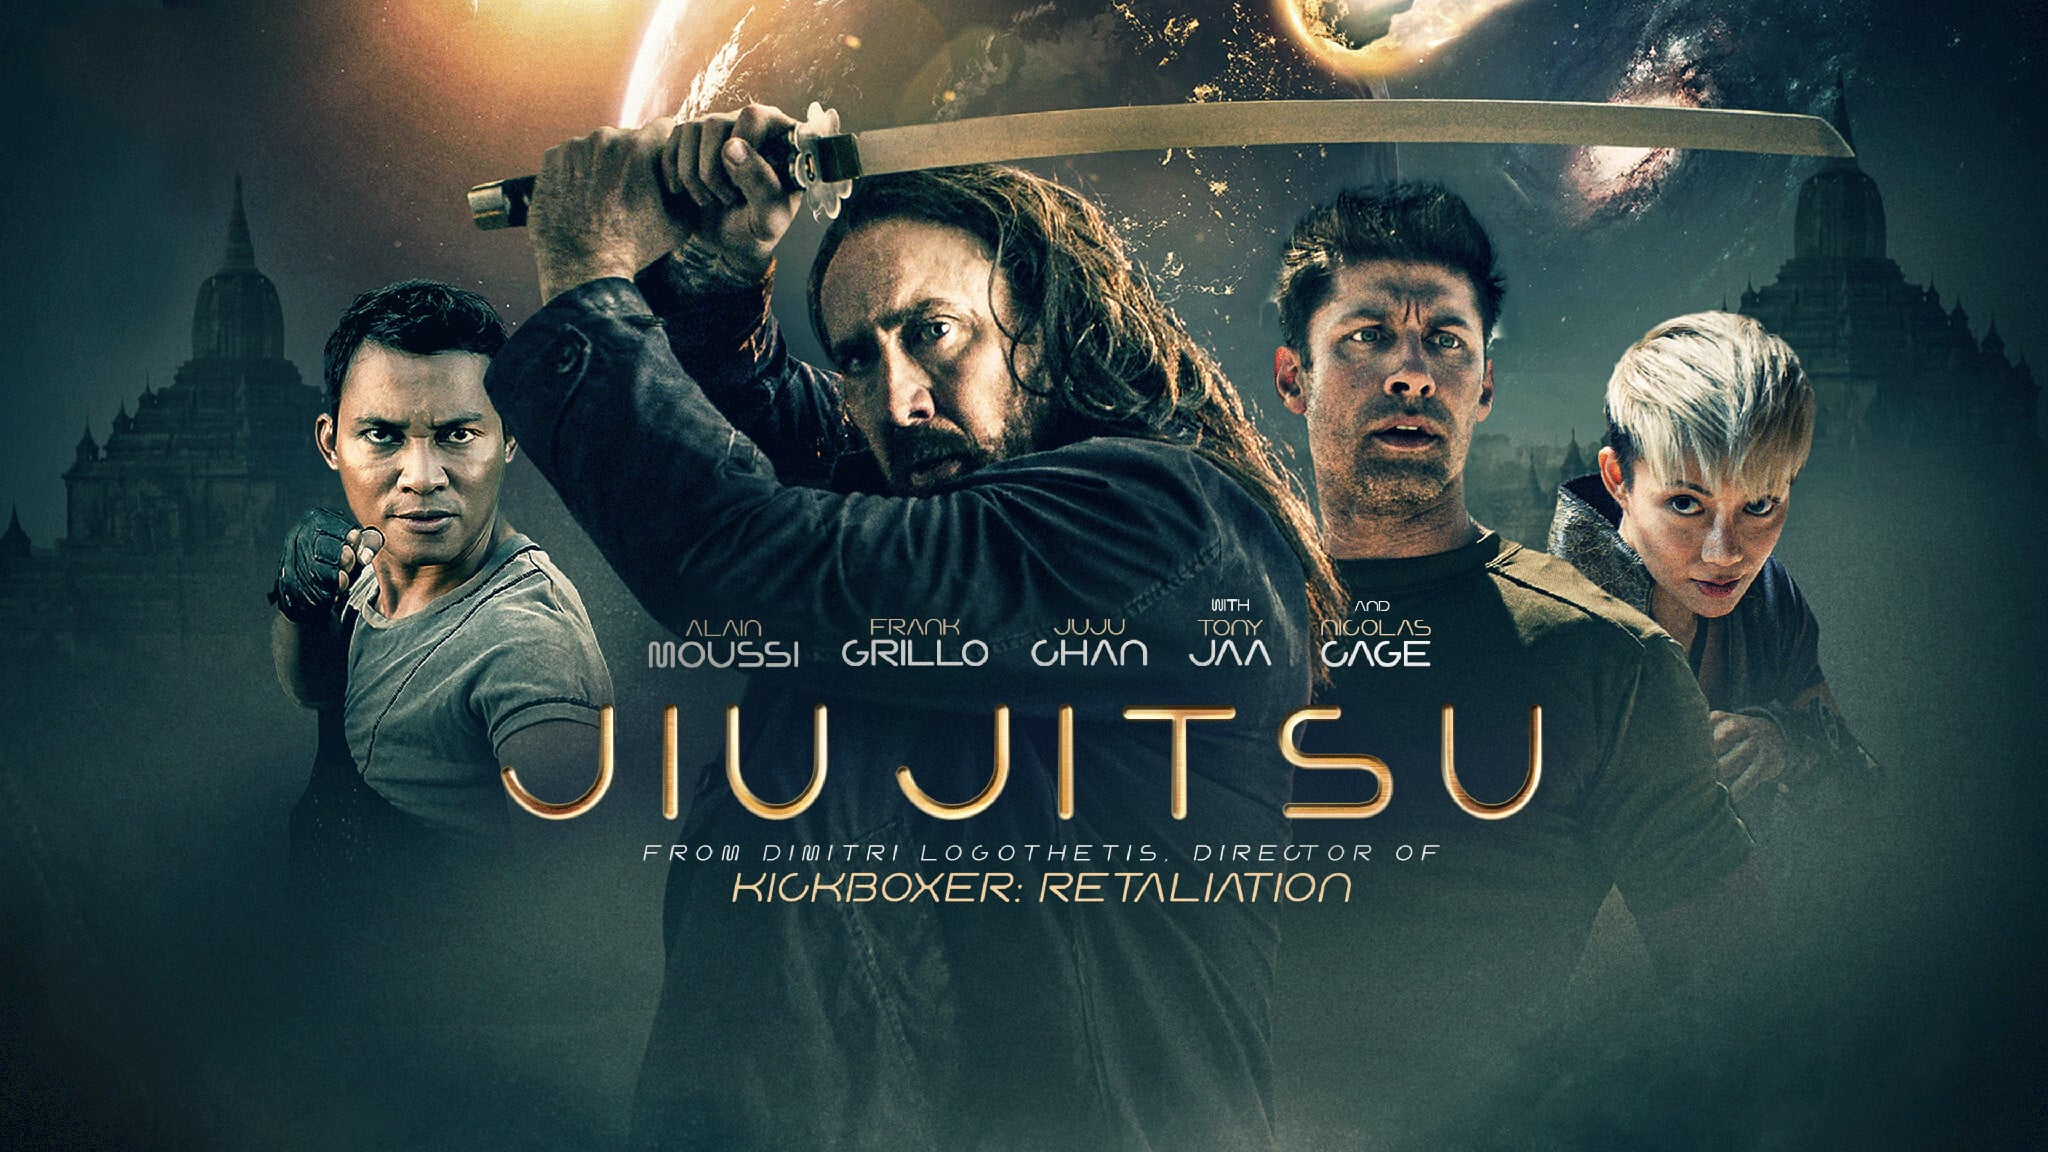 Jiu Jitsu 2020 Movie